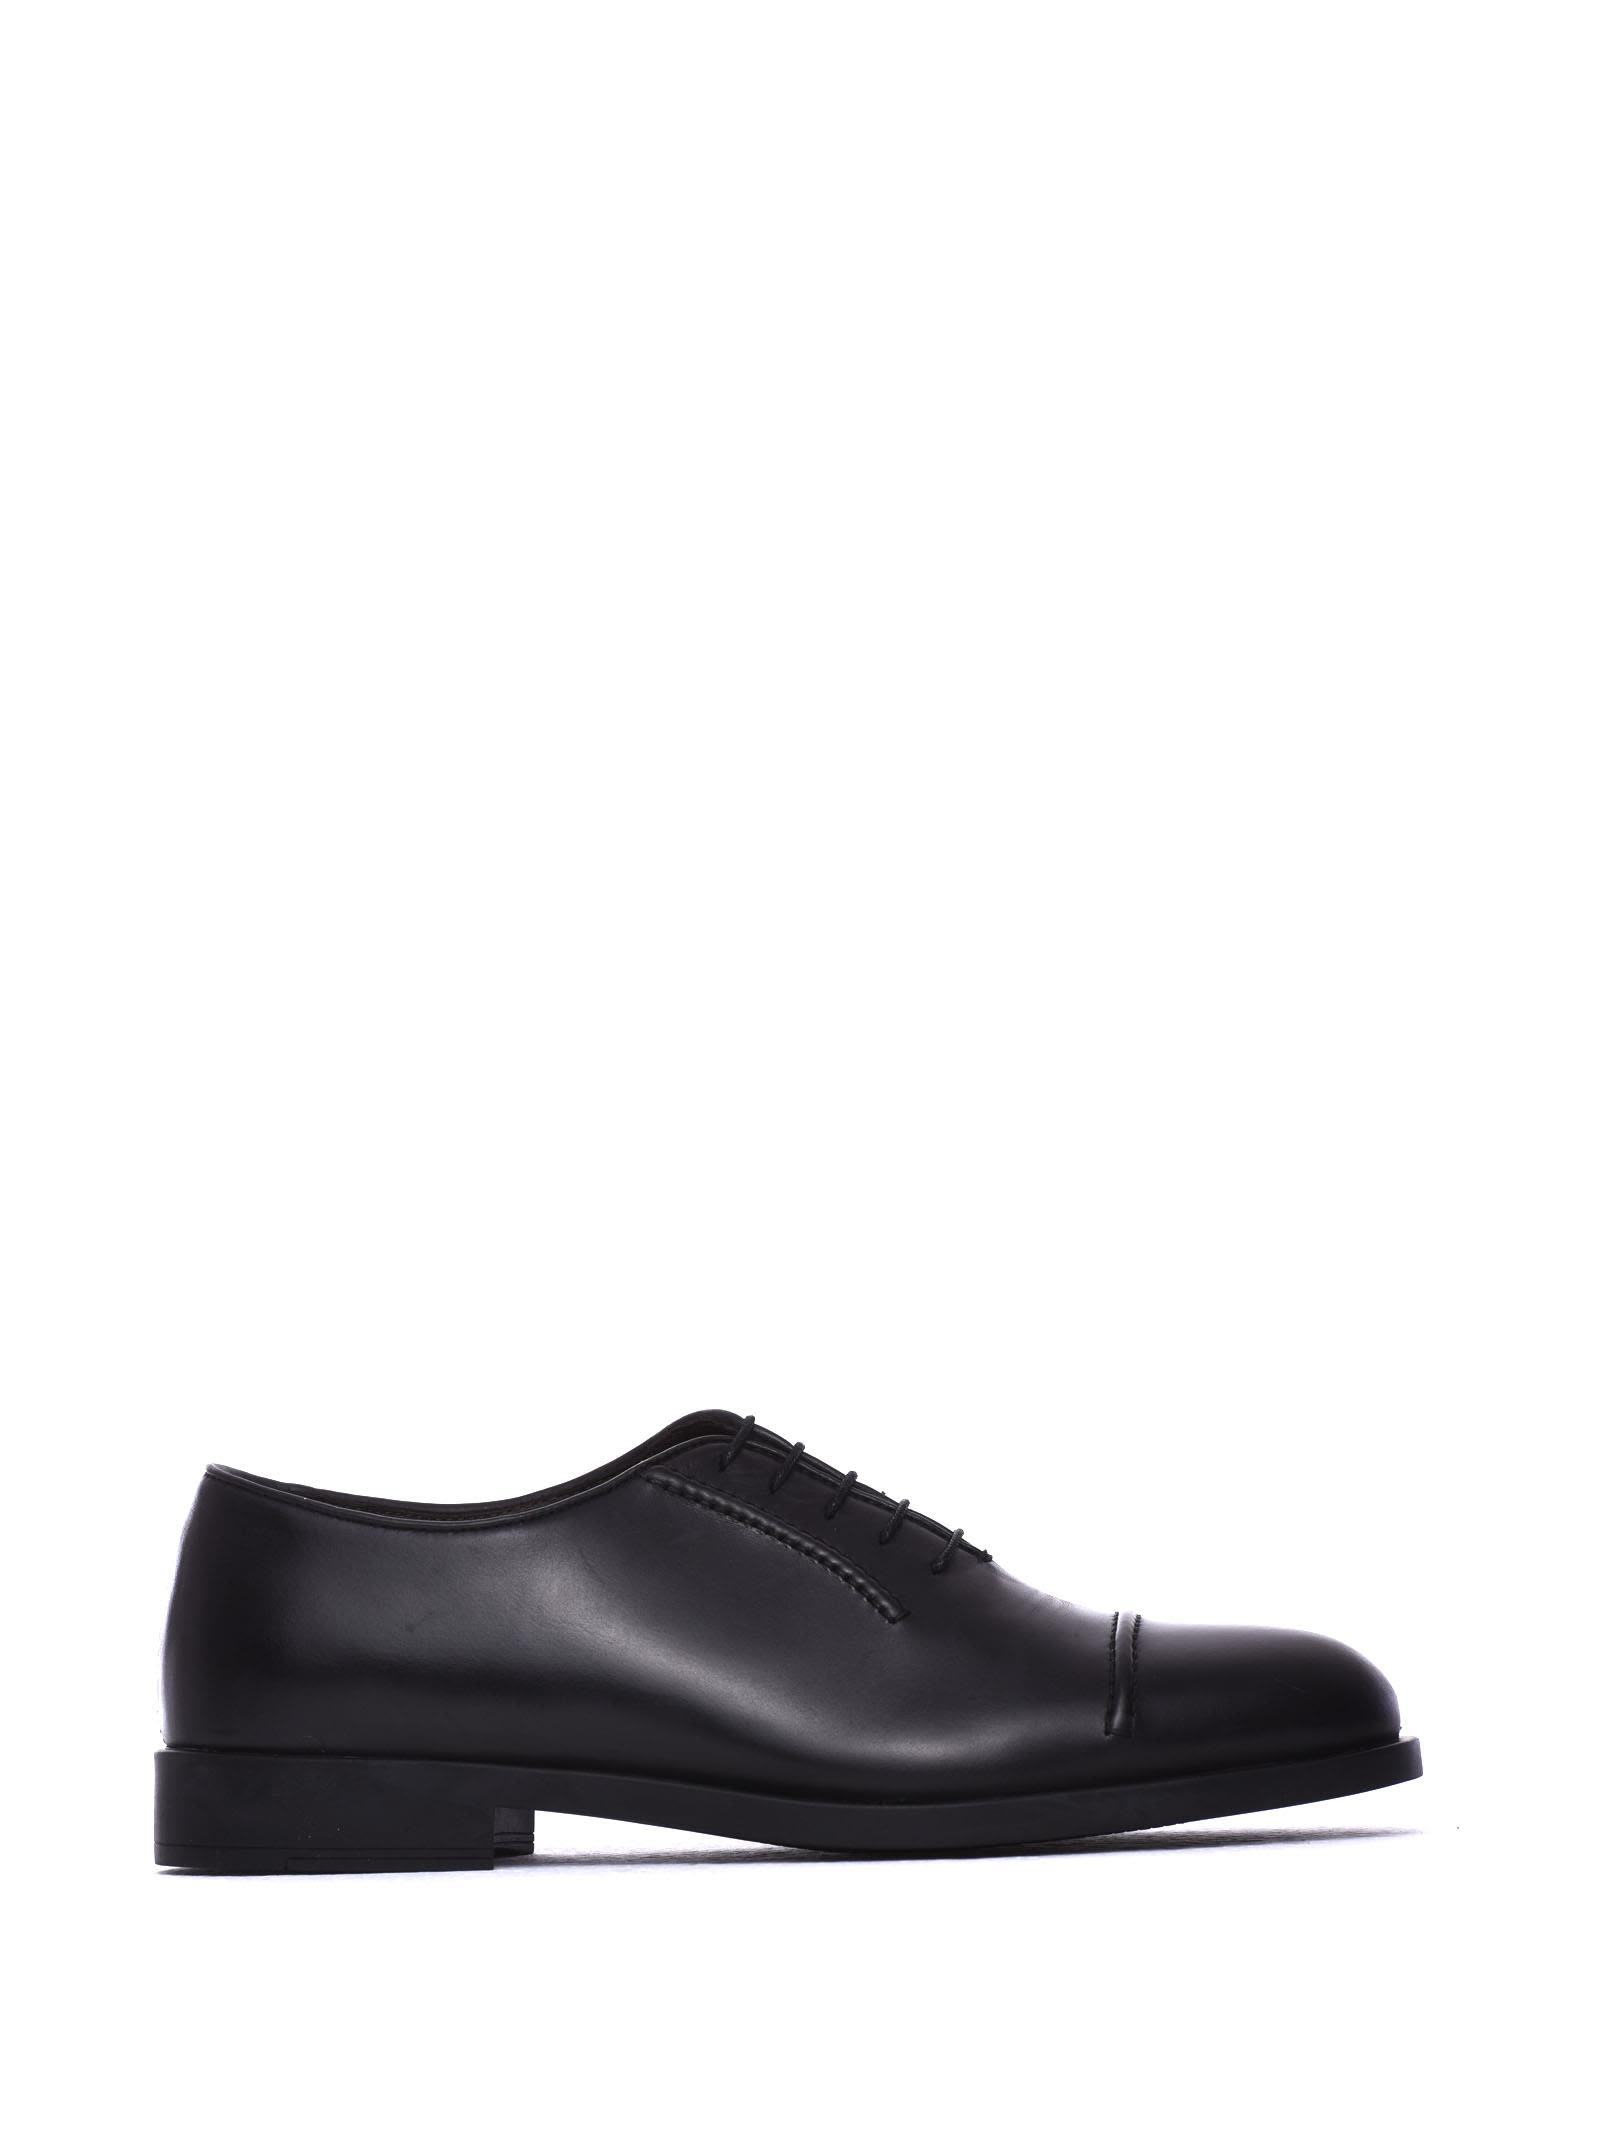 FRATELLI ROSSETTI ONE Lace-Up Black Calf Leather Shoe in Nero